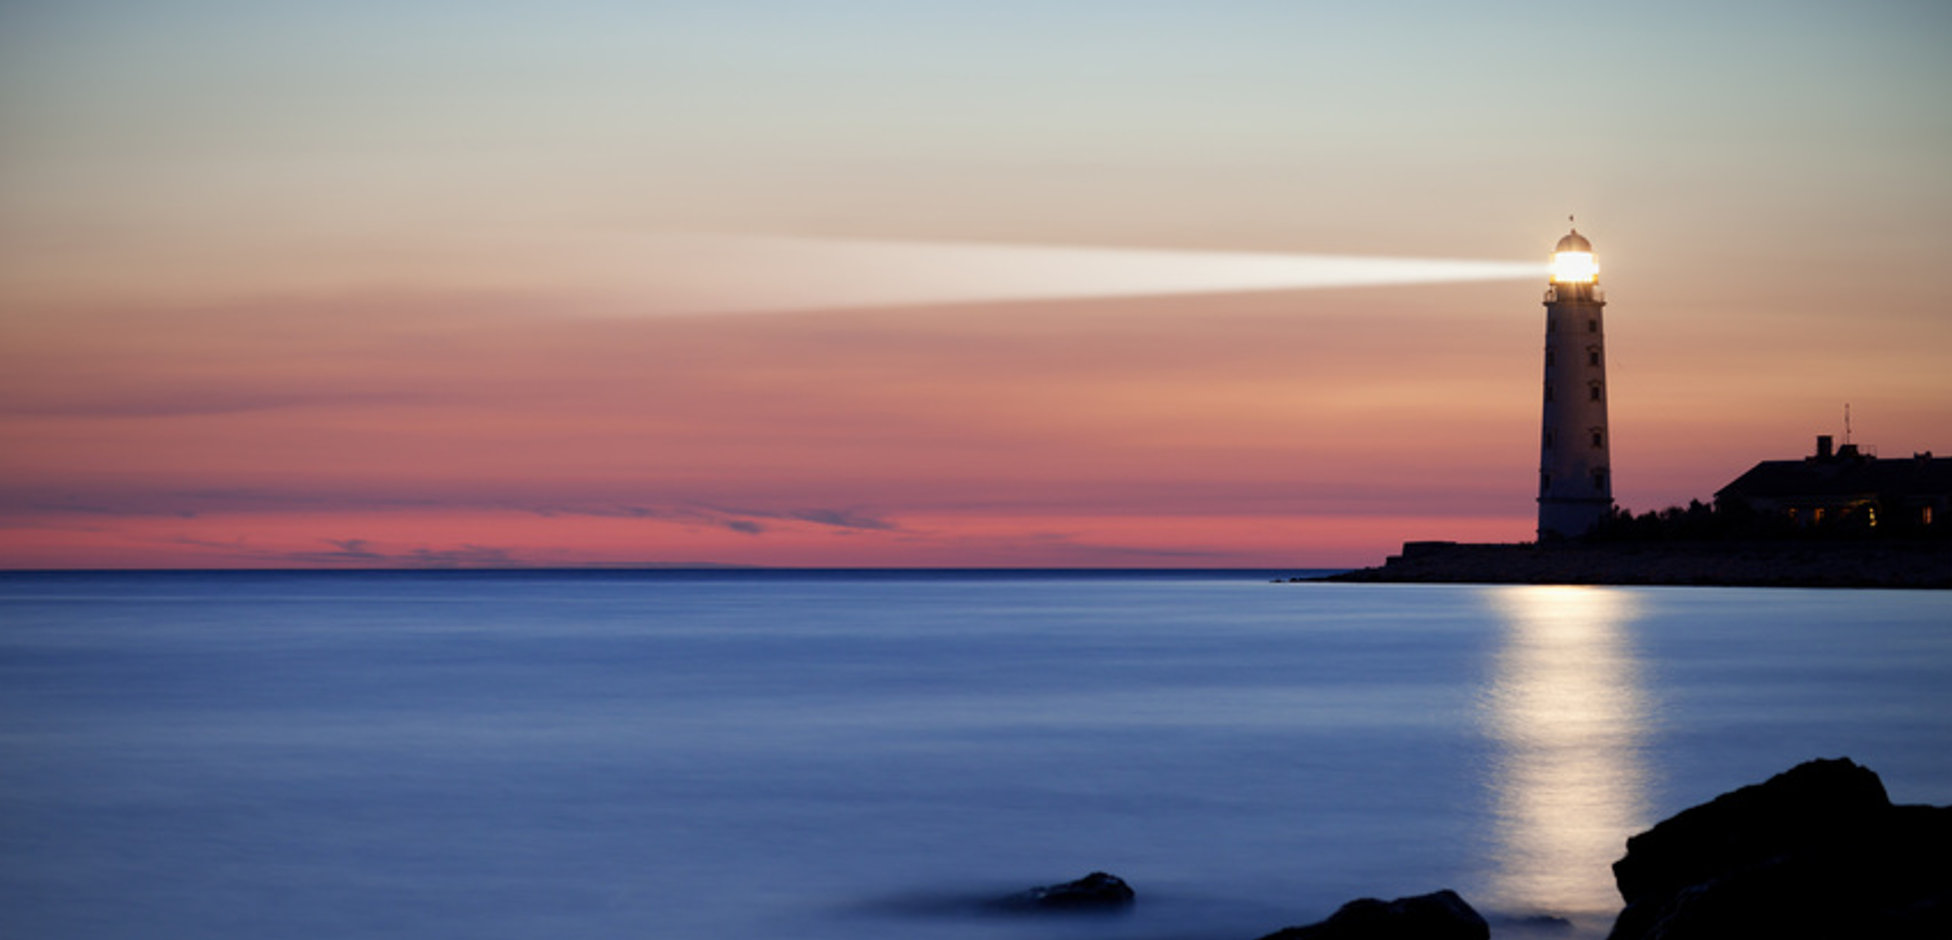 Seascape at sunset. Lighthouse on the coast